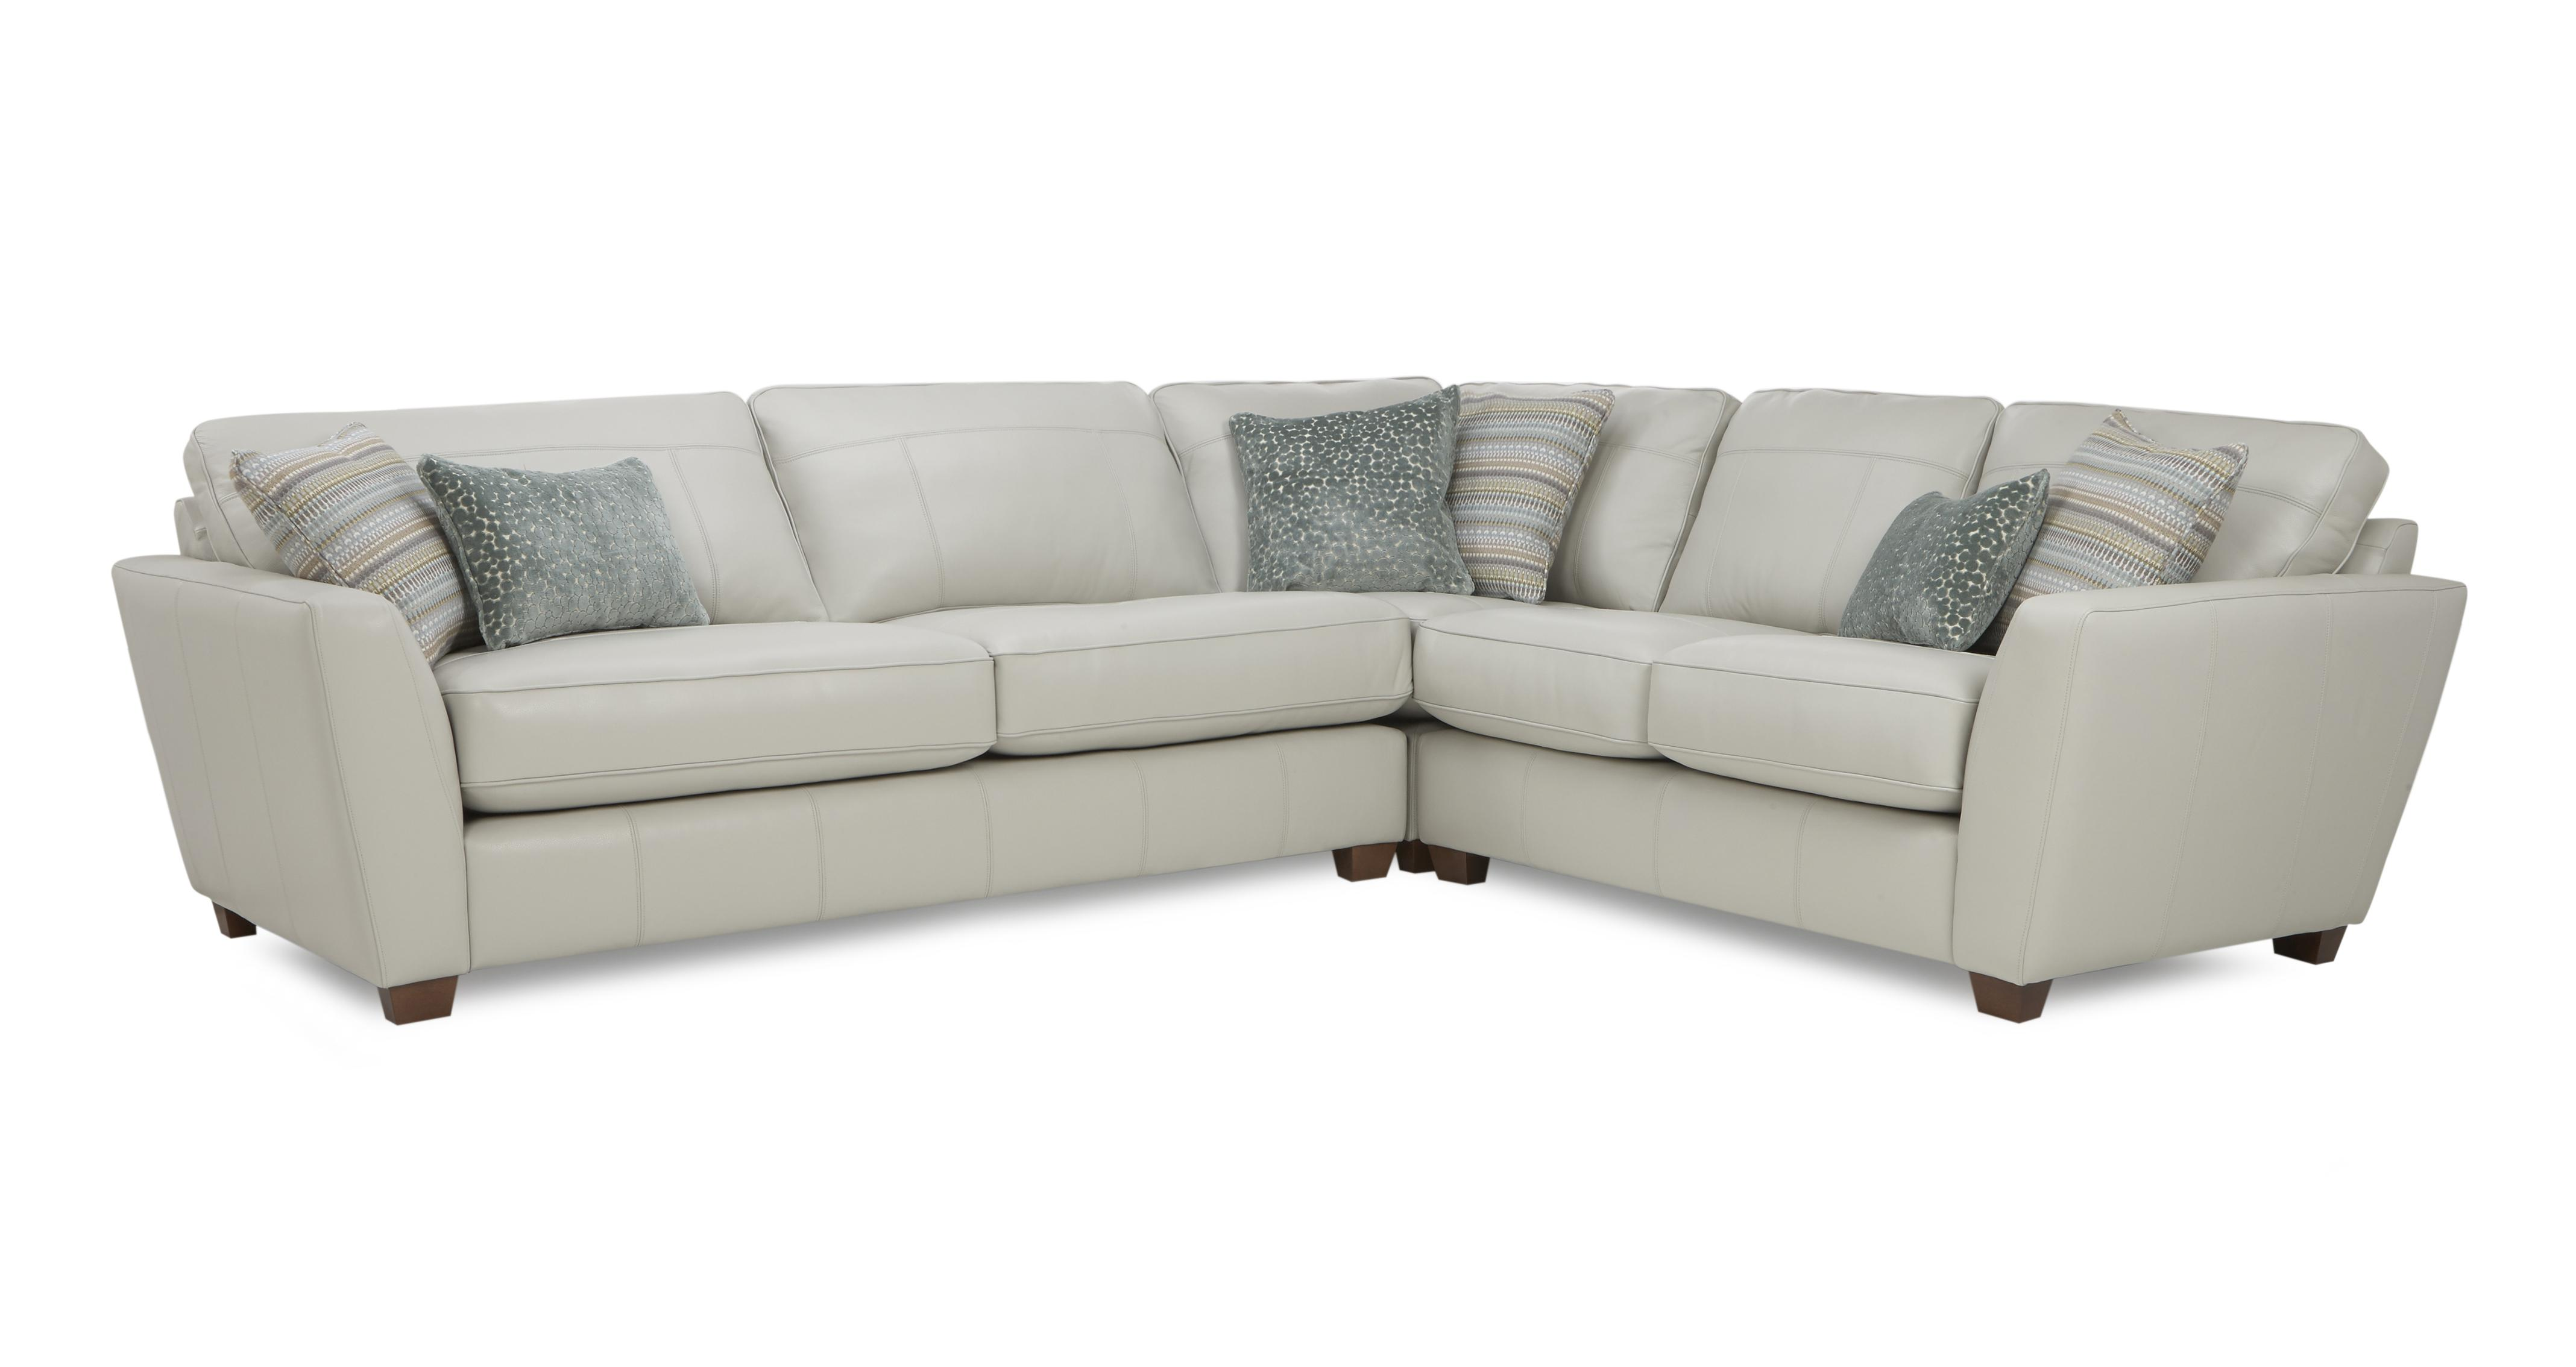 the leather sofa company uk old brick beds dfs co sofas brokeasshome